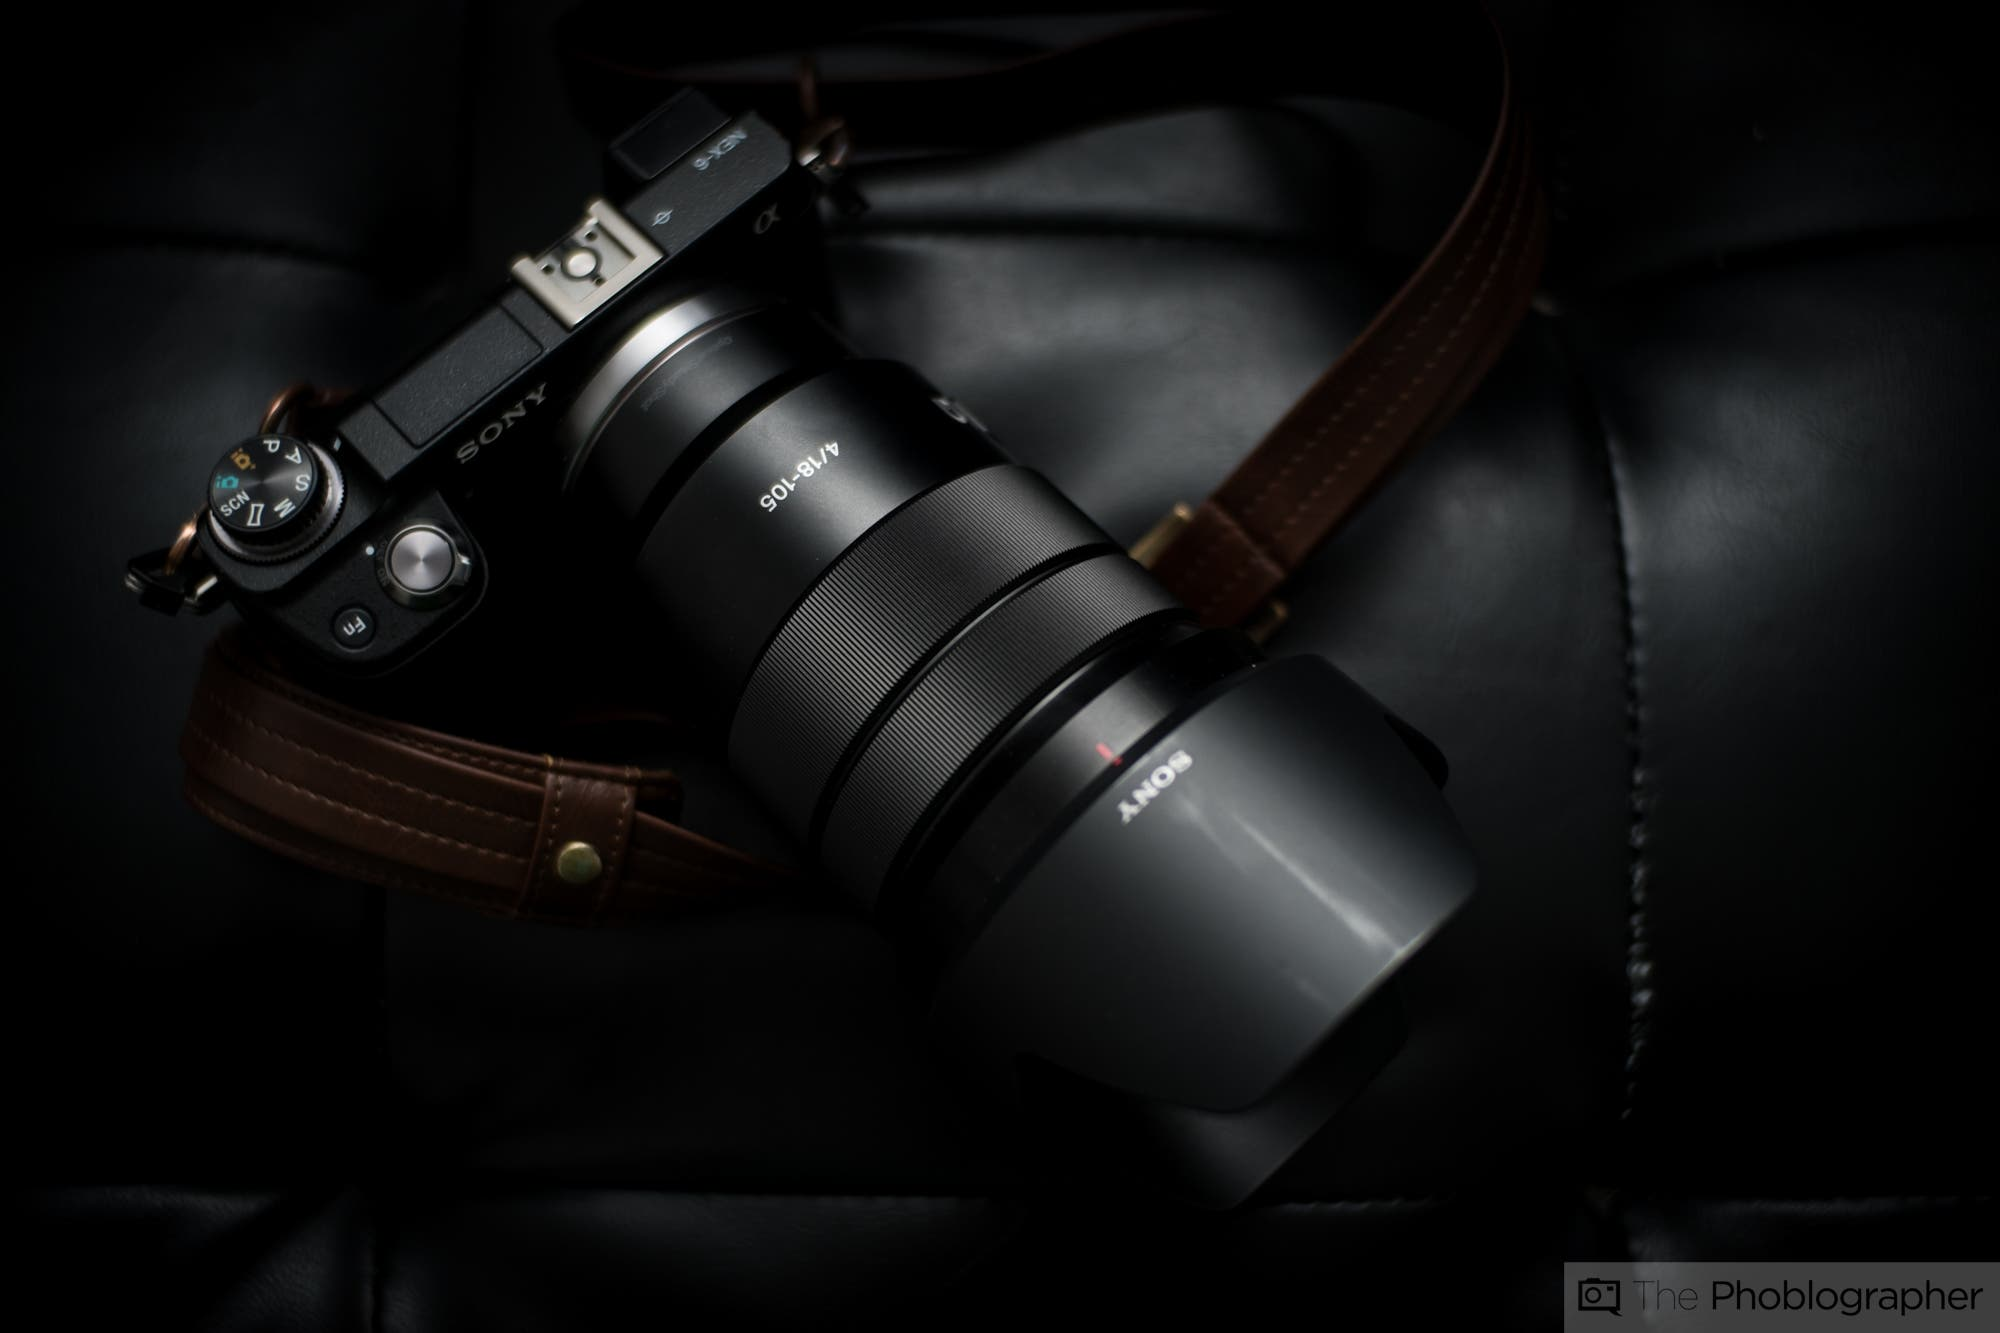 Review: Sony 18-105mm f4 G OSS (APS-C E Mount) - The Phoblographer